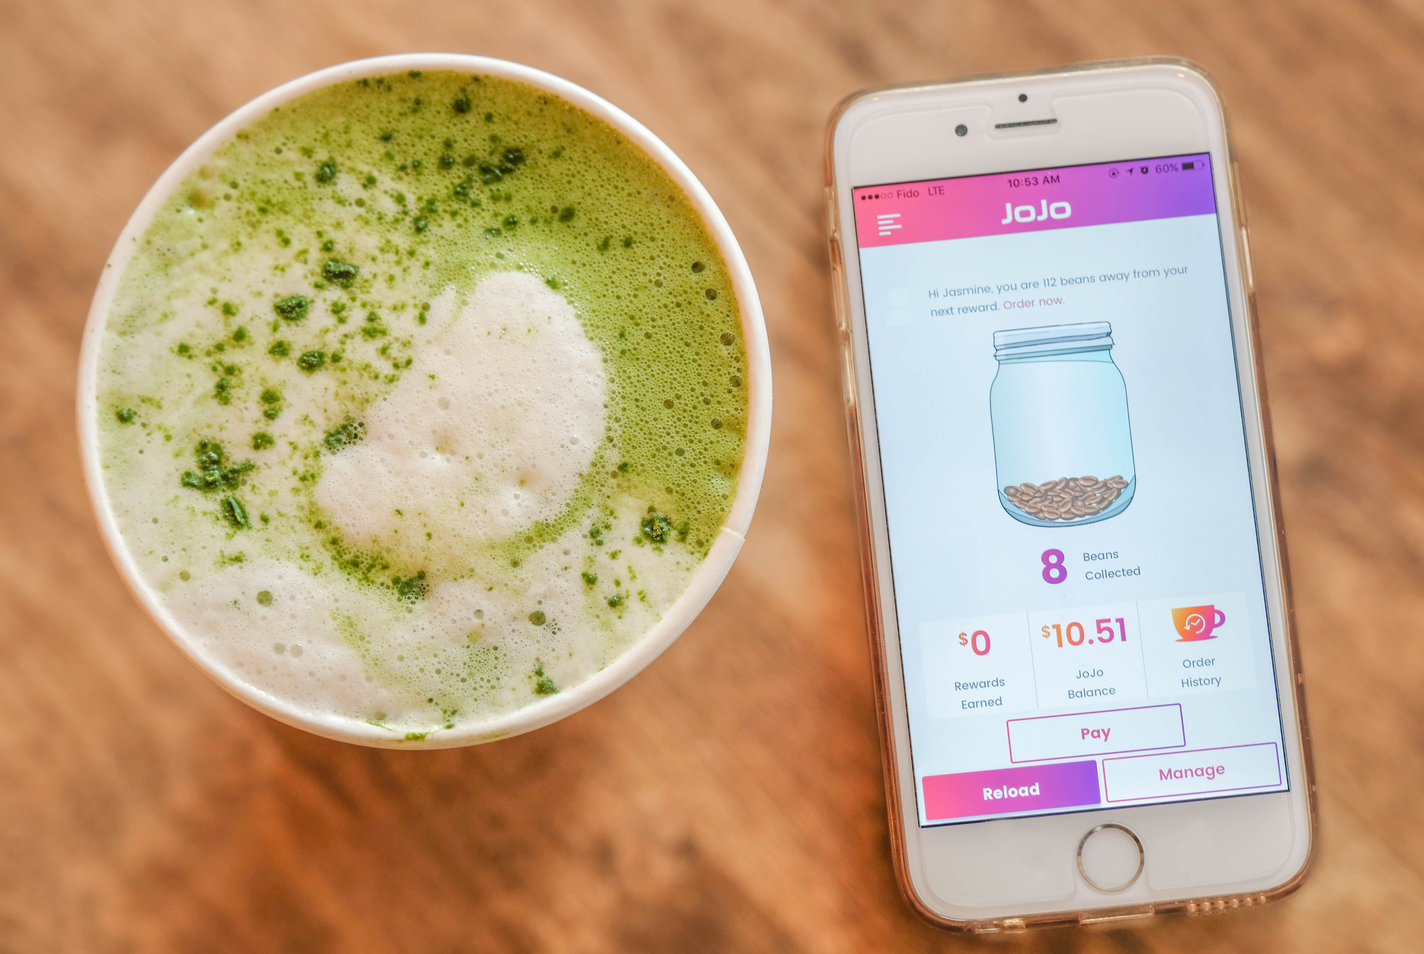 JoJo is creating a cooperative network of indie coffee shops supporting local business